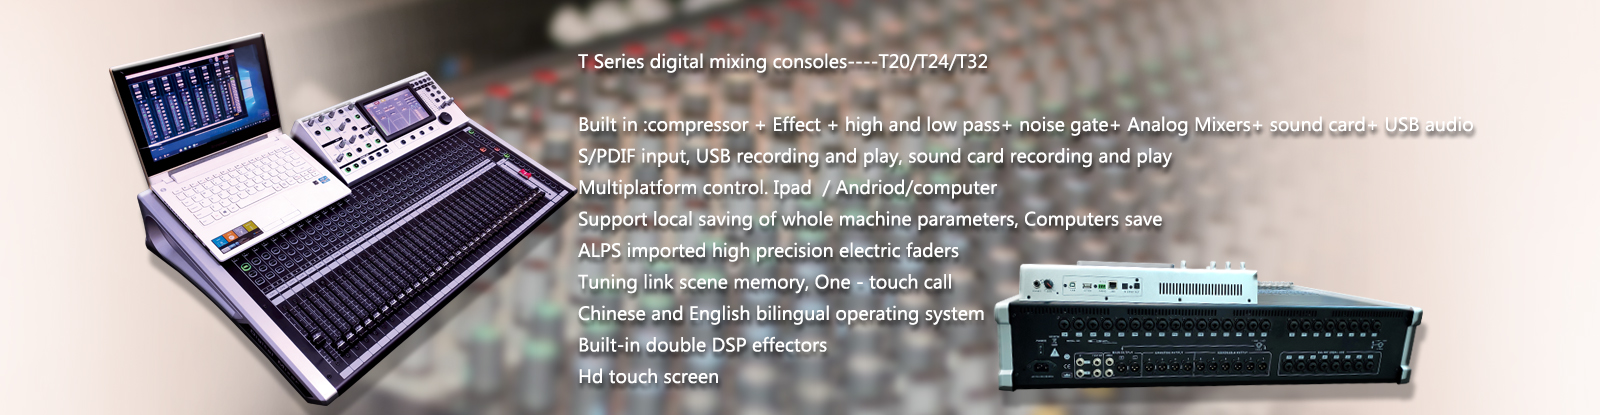 T Series digital mixing consoles